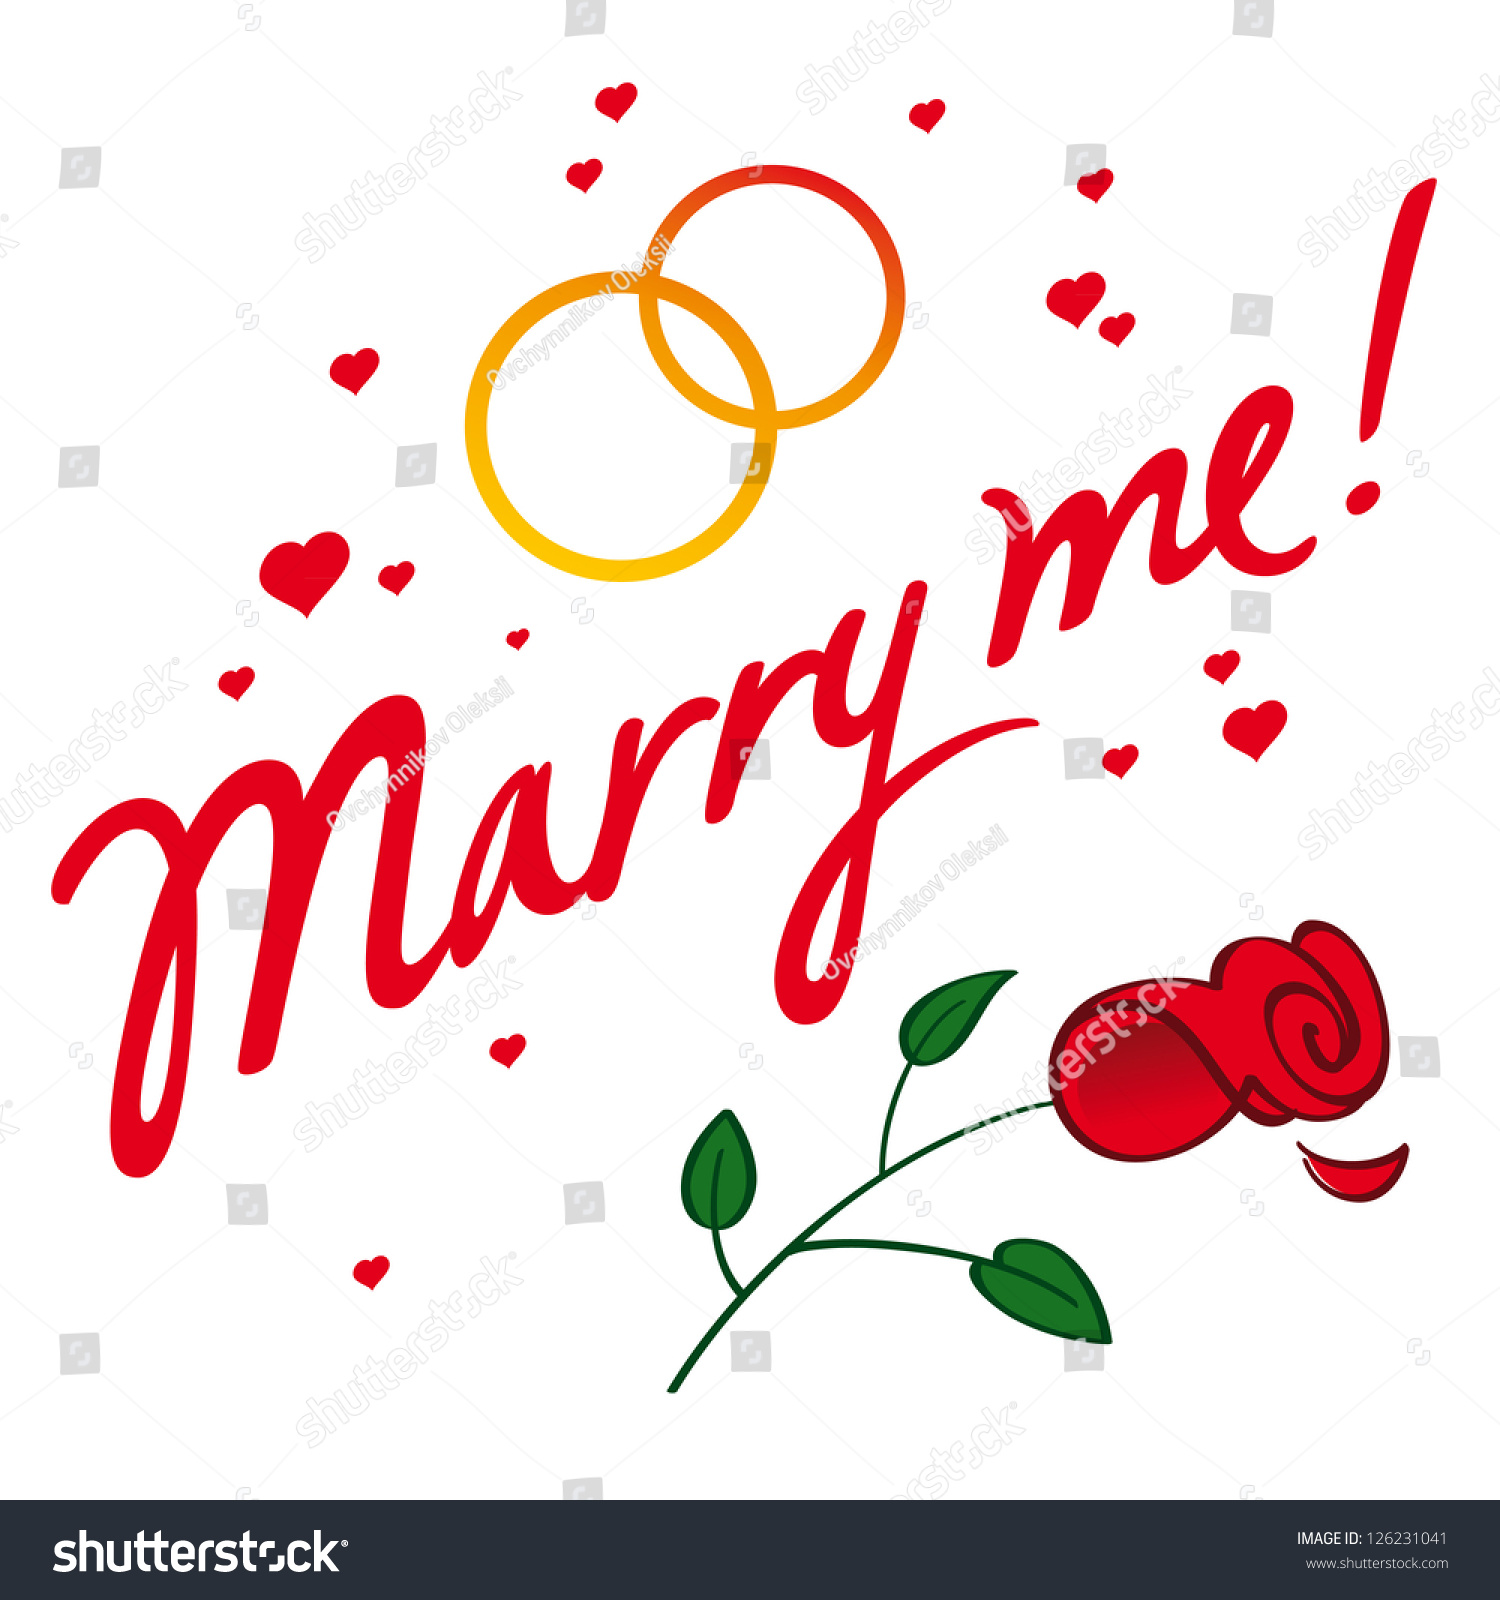 Matrimony Wedding Marry Marriage Bride 51